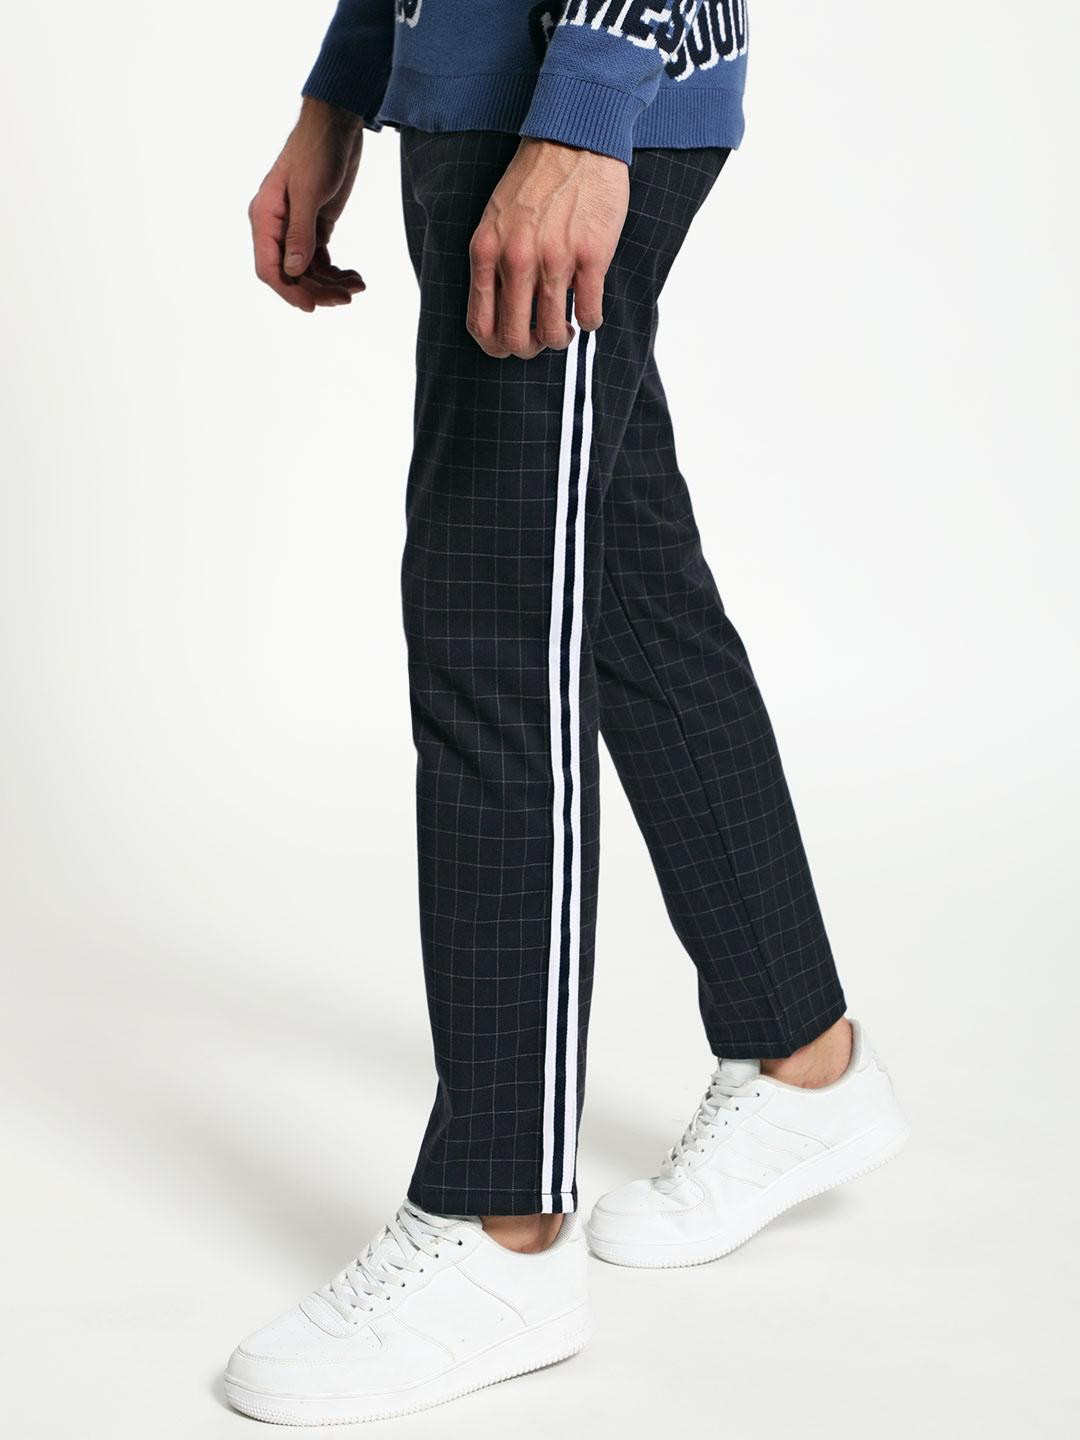 Blue Saint Navy Grid Check Side Tape Trousers 1